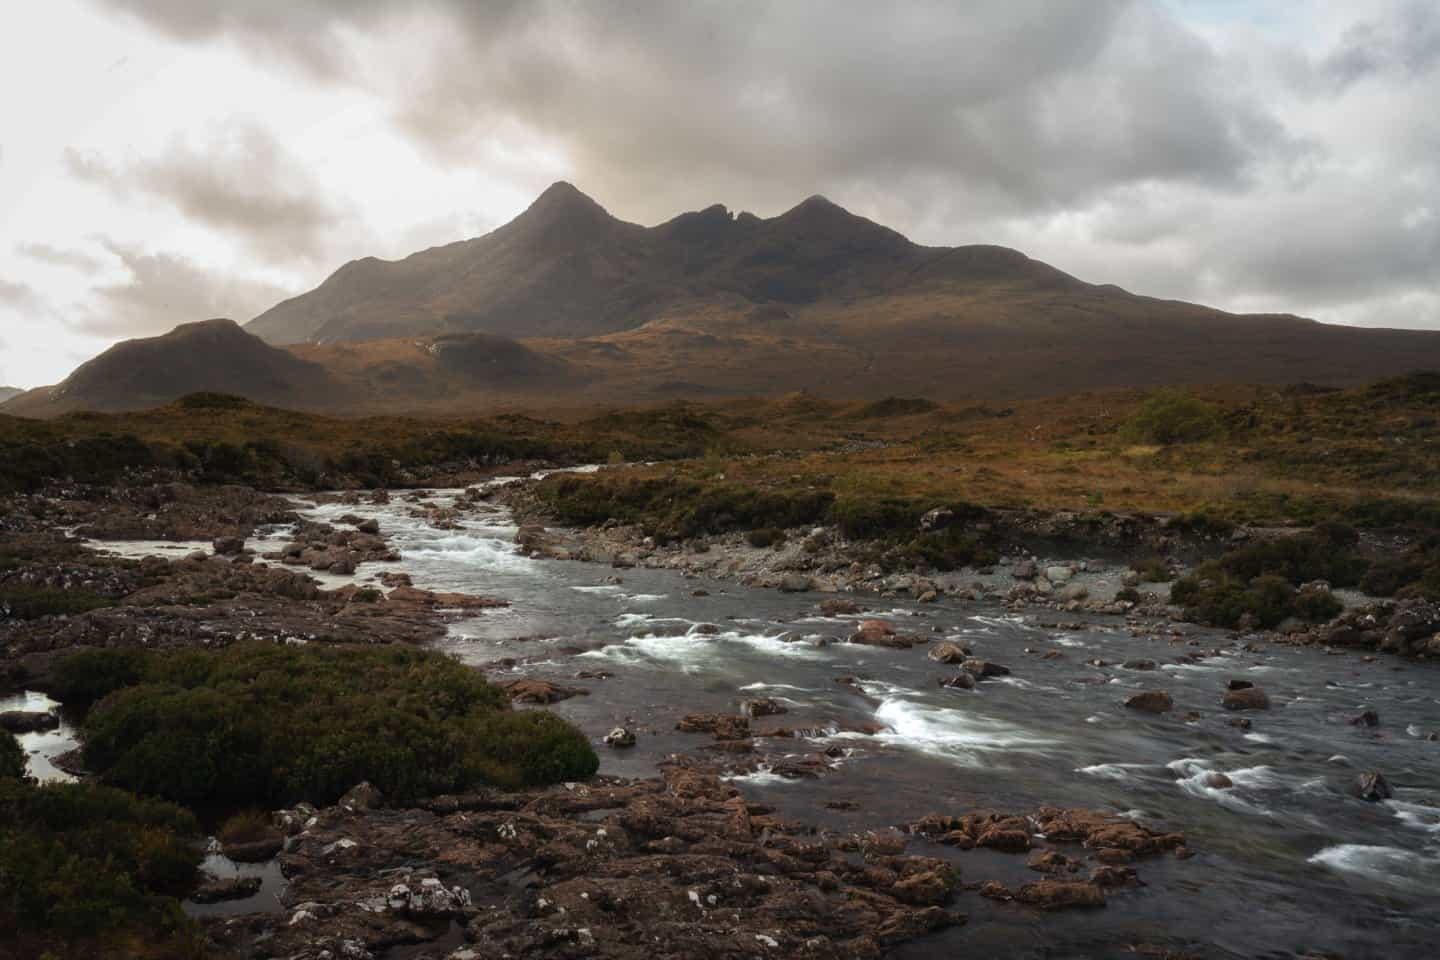 The Black Cuillin mountains are missed during most people's 10 day visits to Scotland, seen looming in the distance of Sligachan.